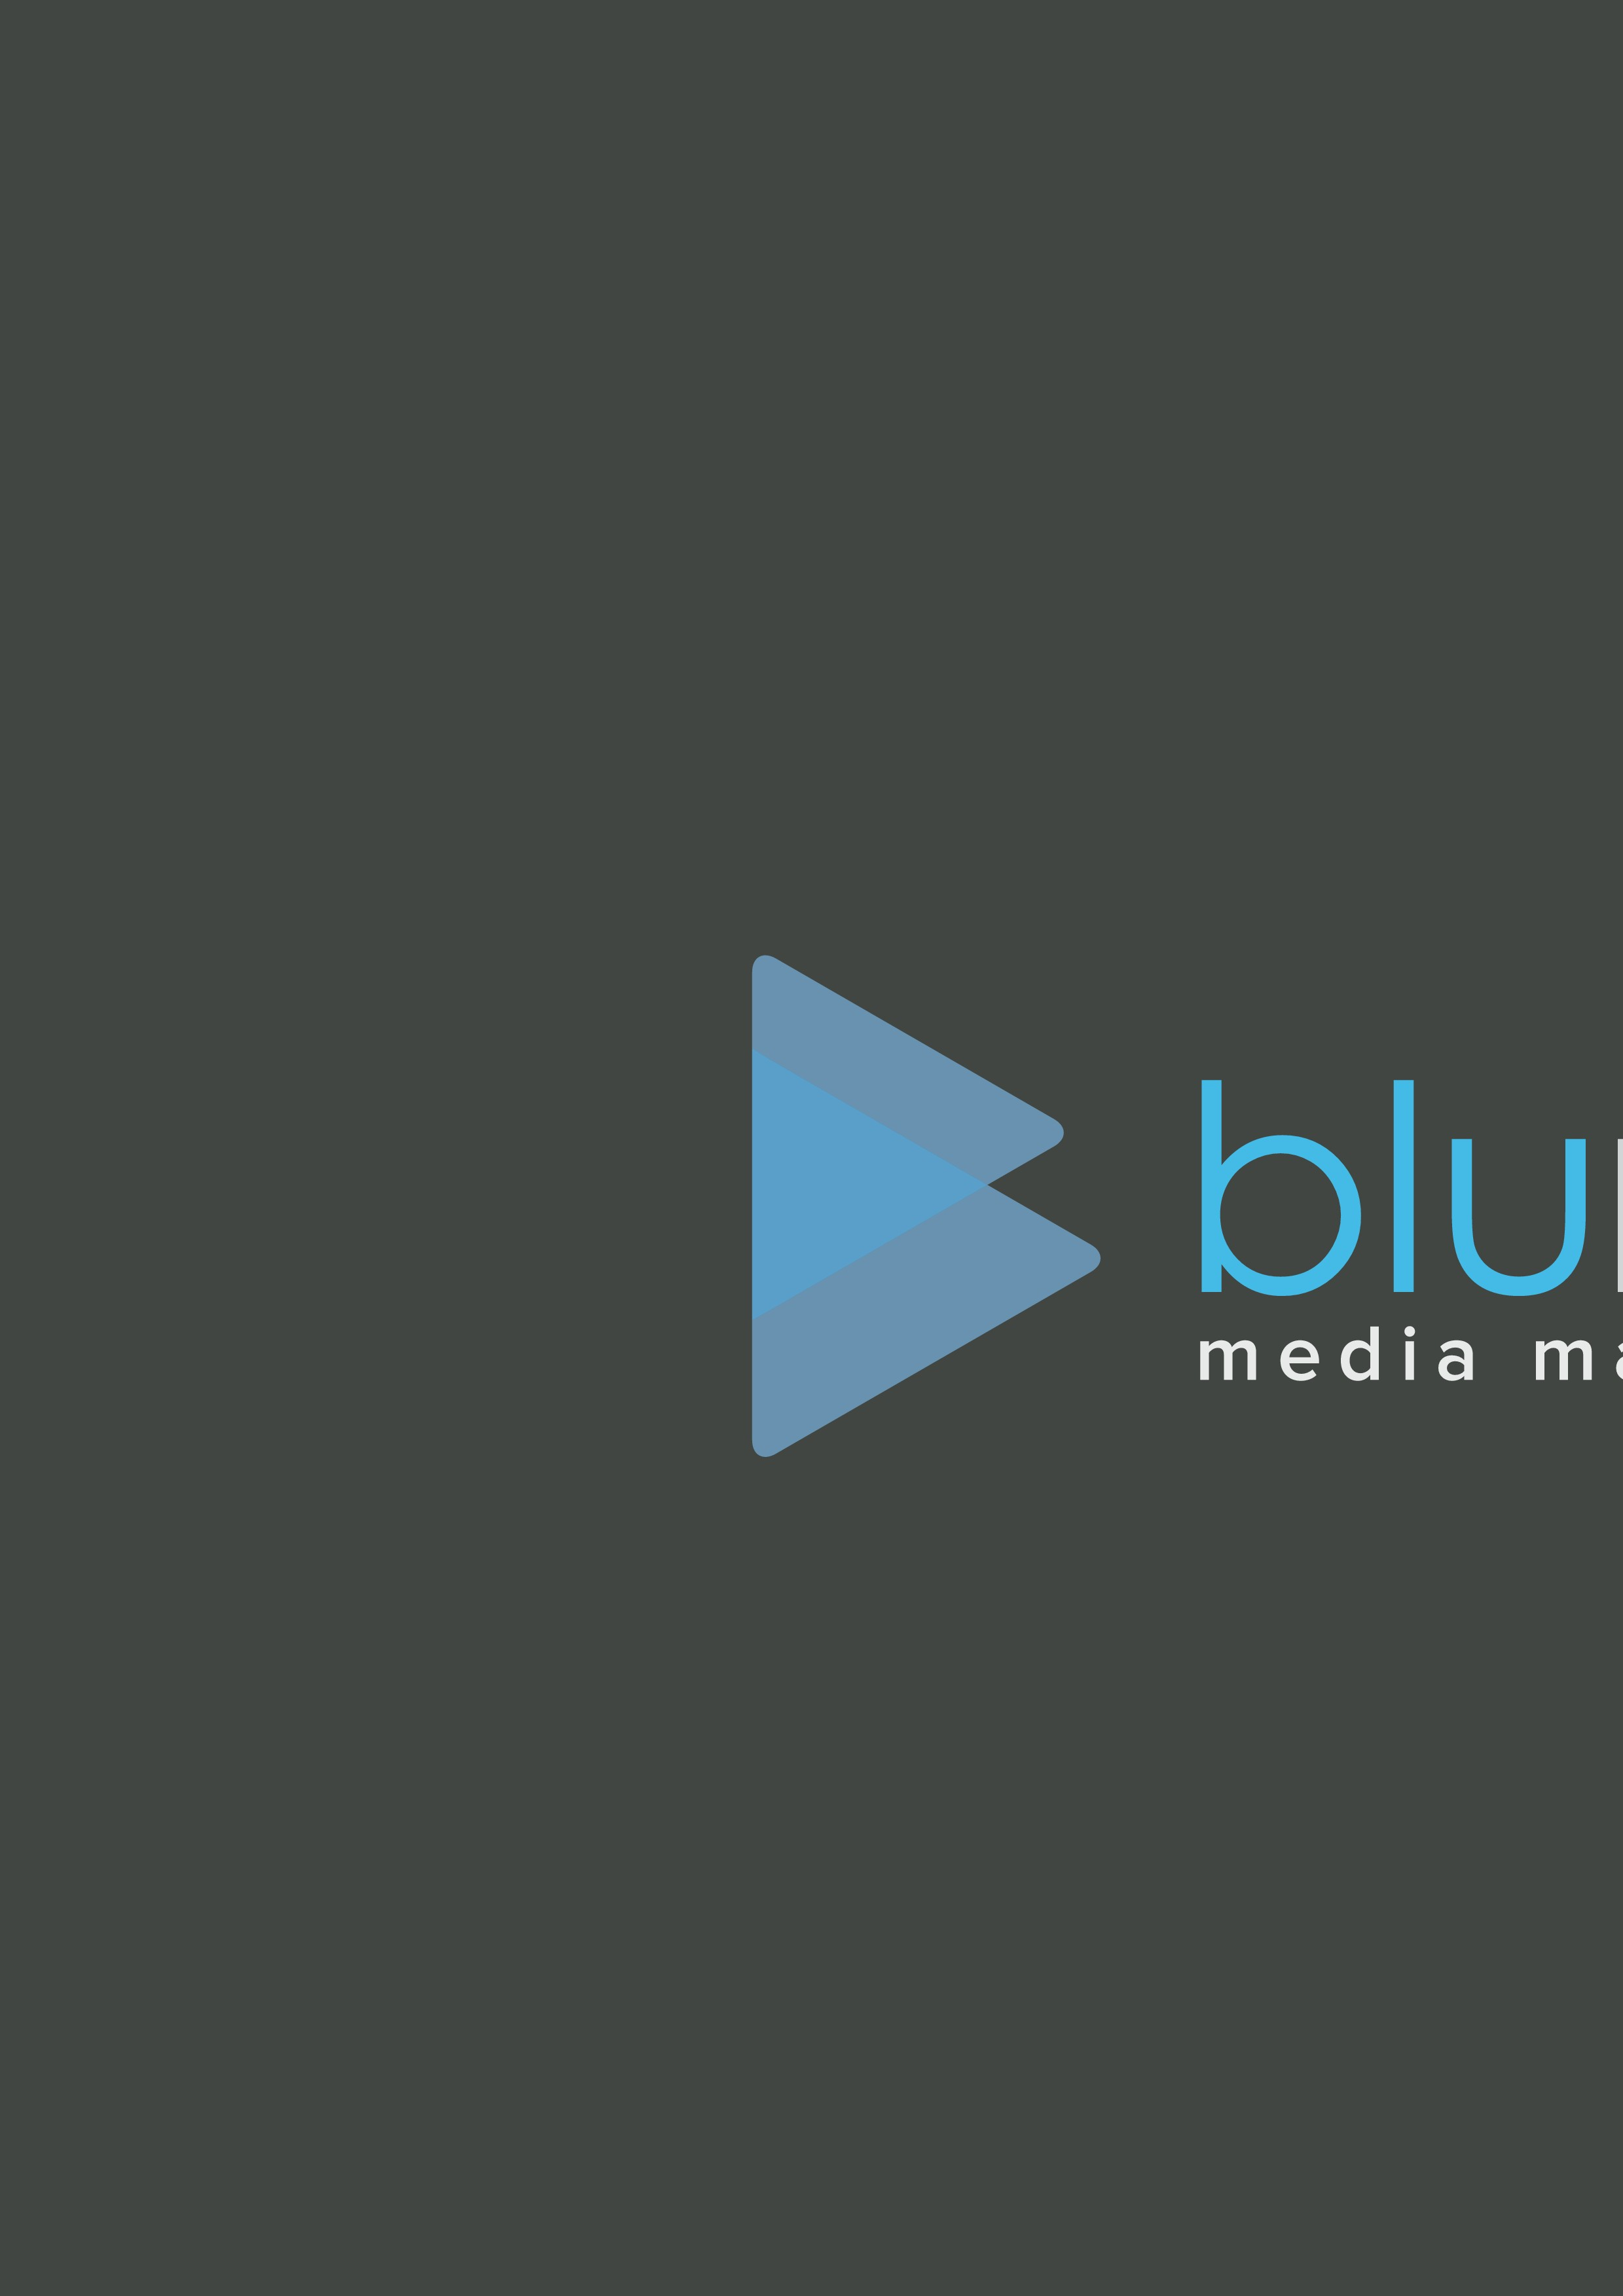 Help elevate a media production company to a new standard